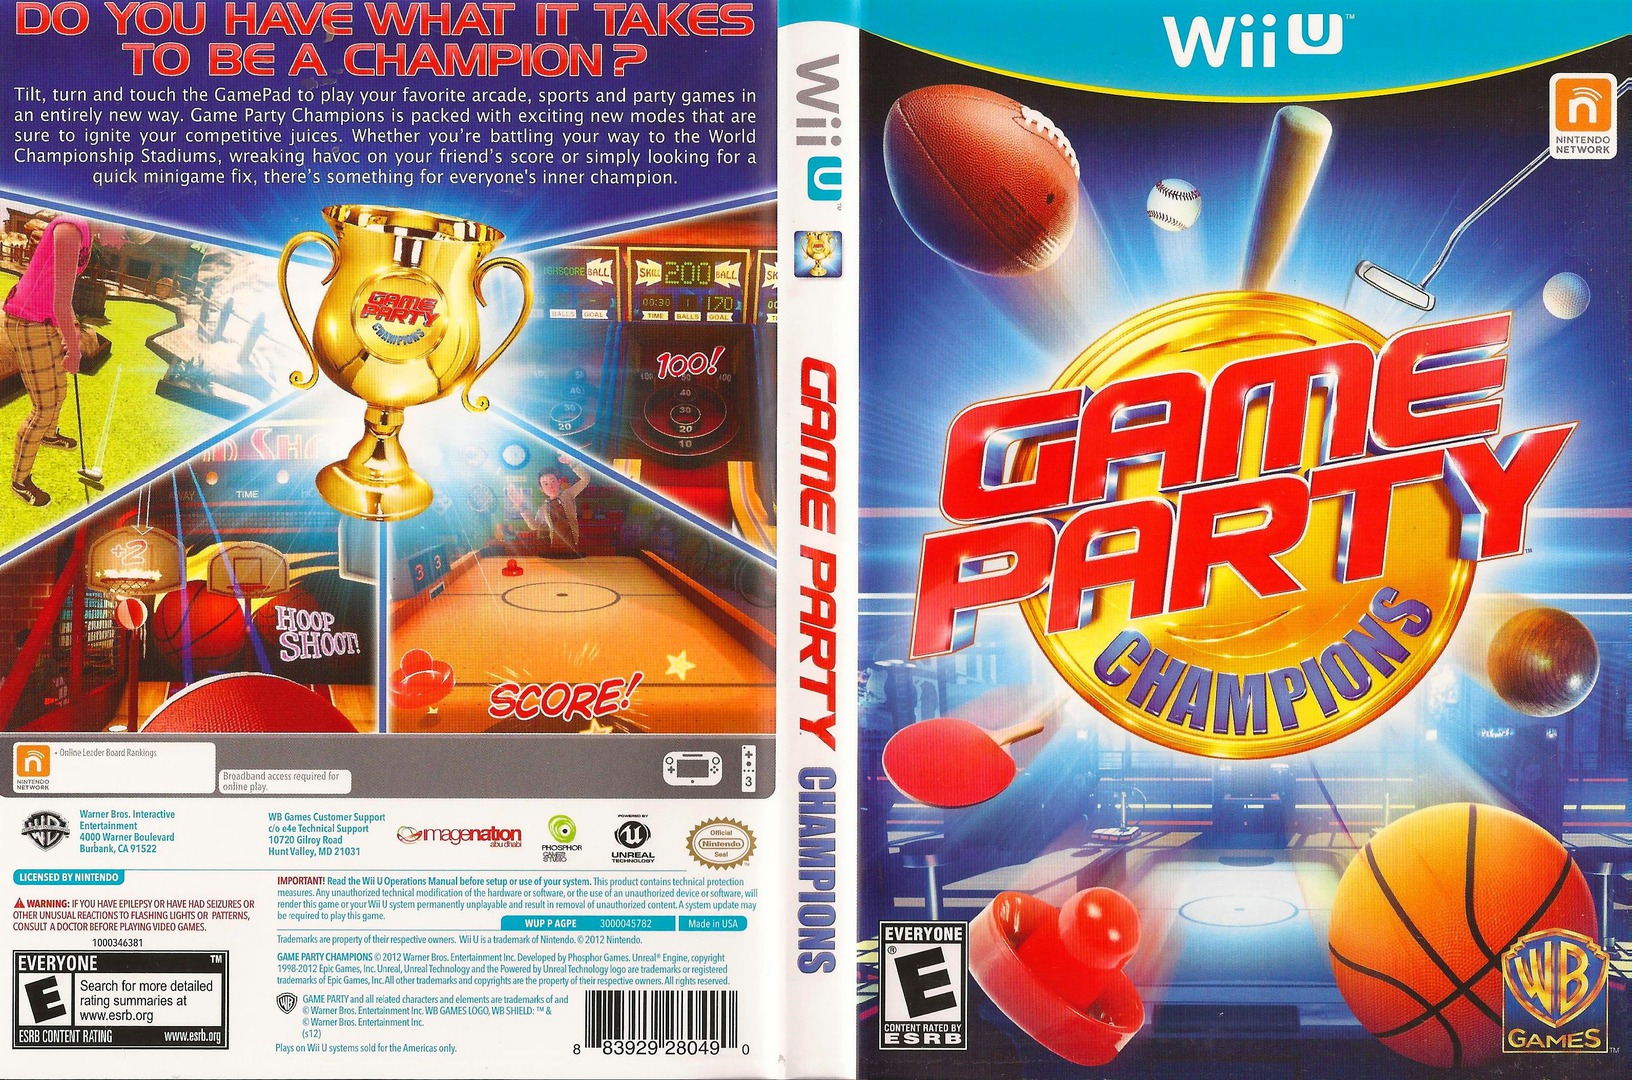 Game Party Champions WiiU coverfullHQ (AGPEWR)